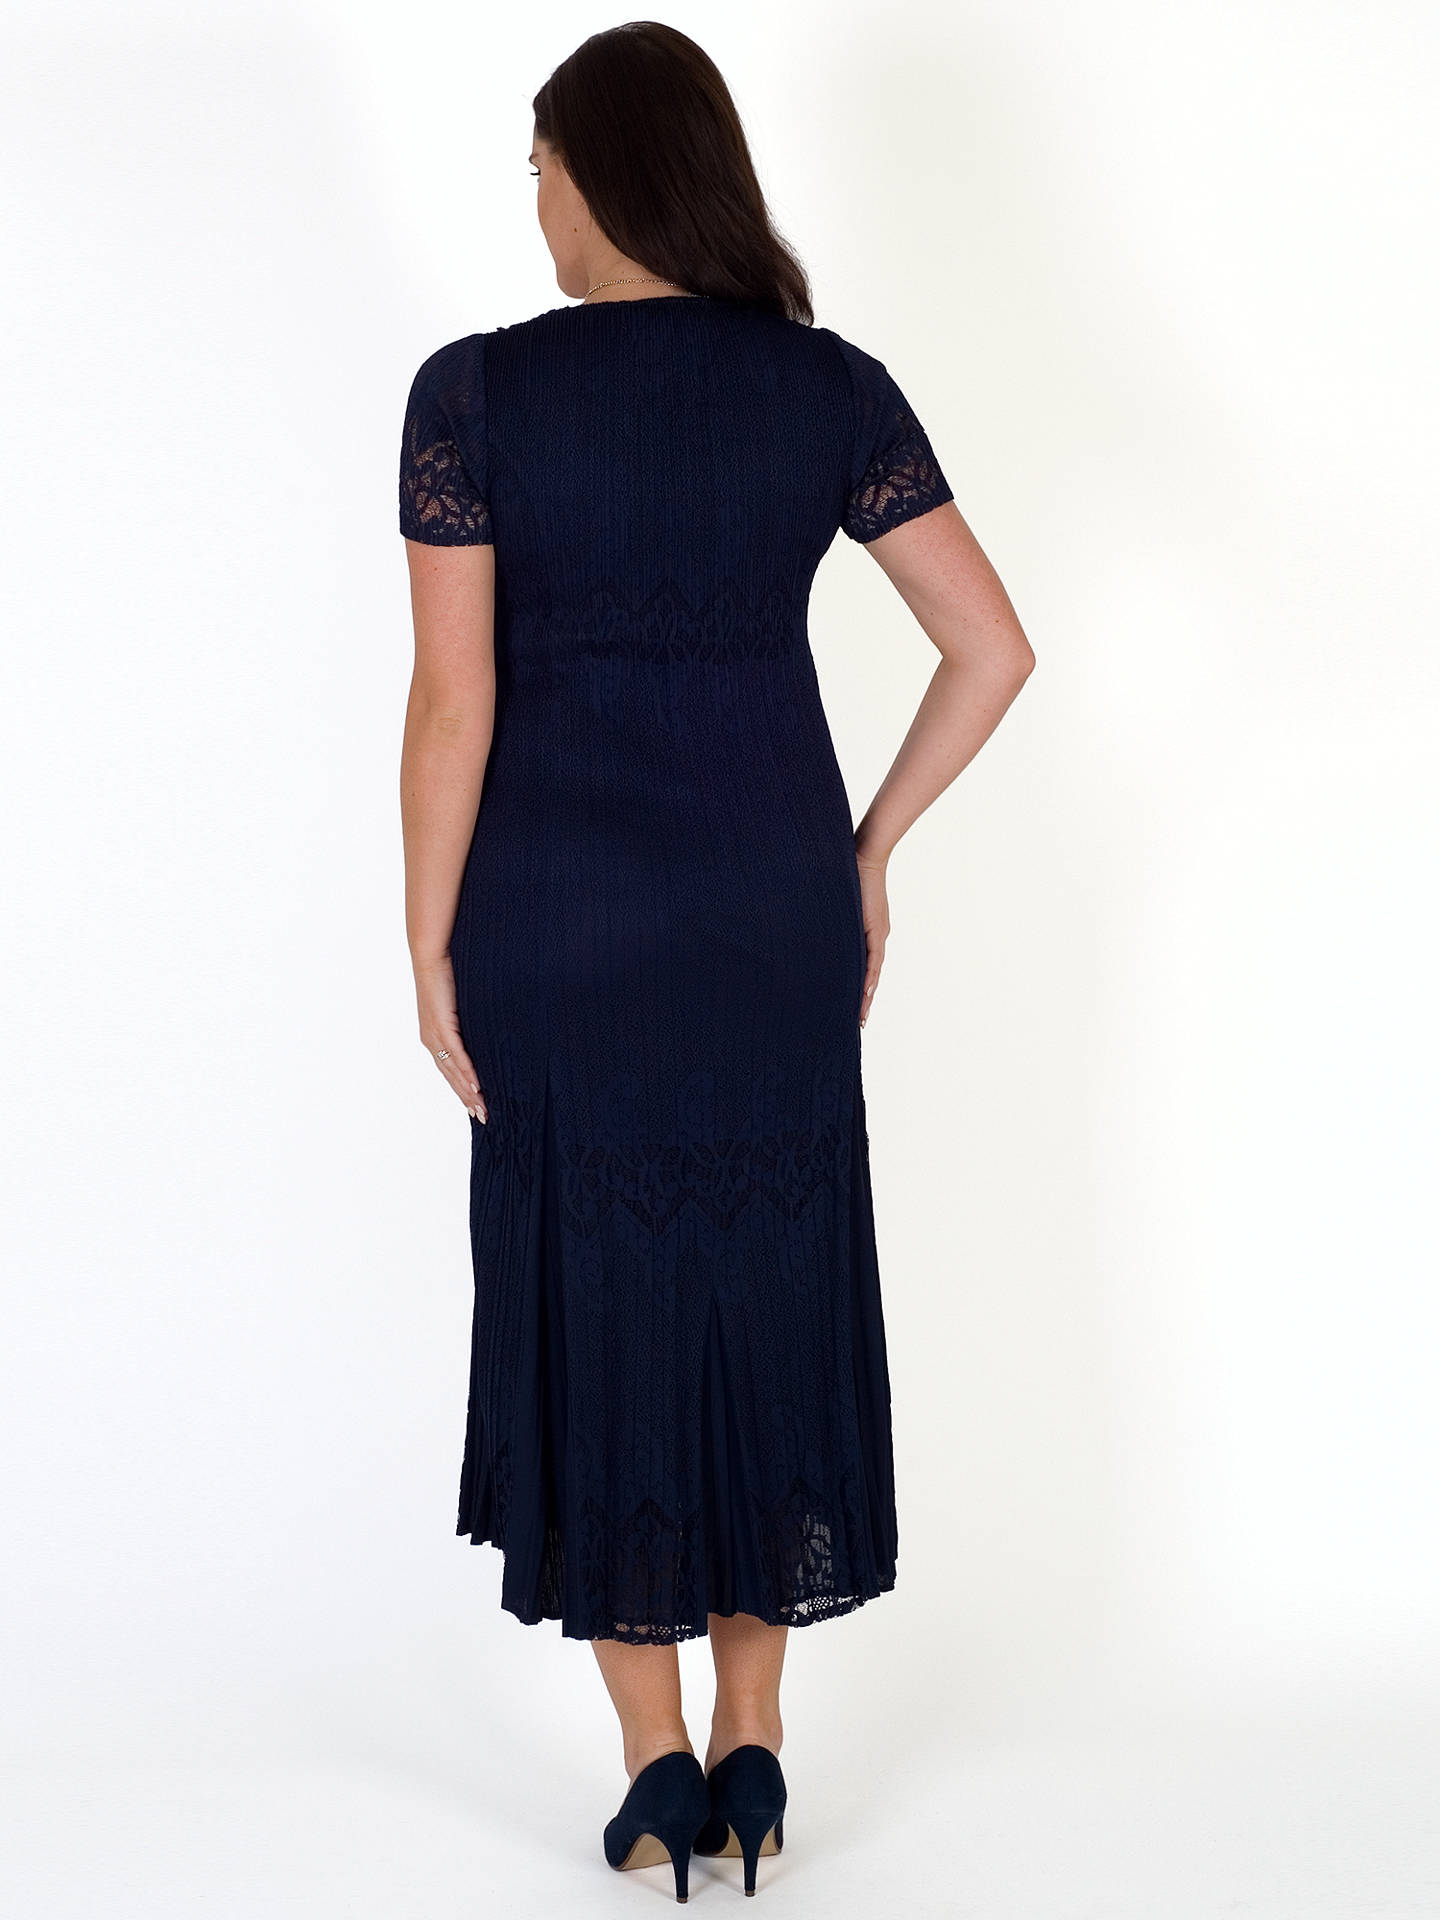 BuyChesca Border Lace Crush Pleat Dress, Navy, 12-14 Online at johnlewis.com